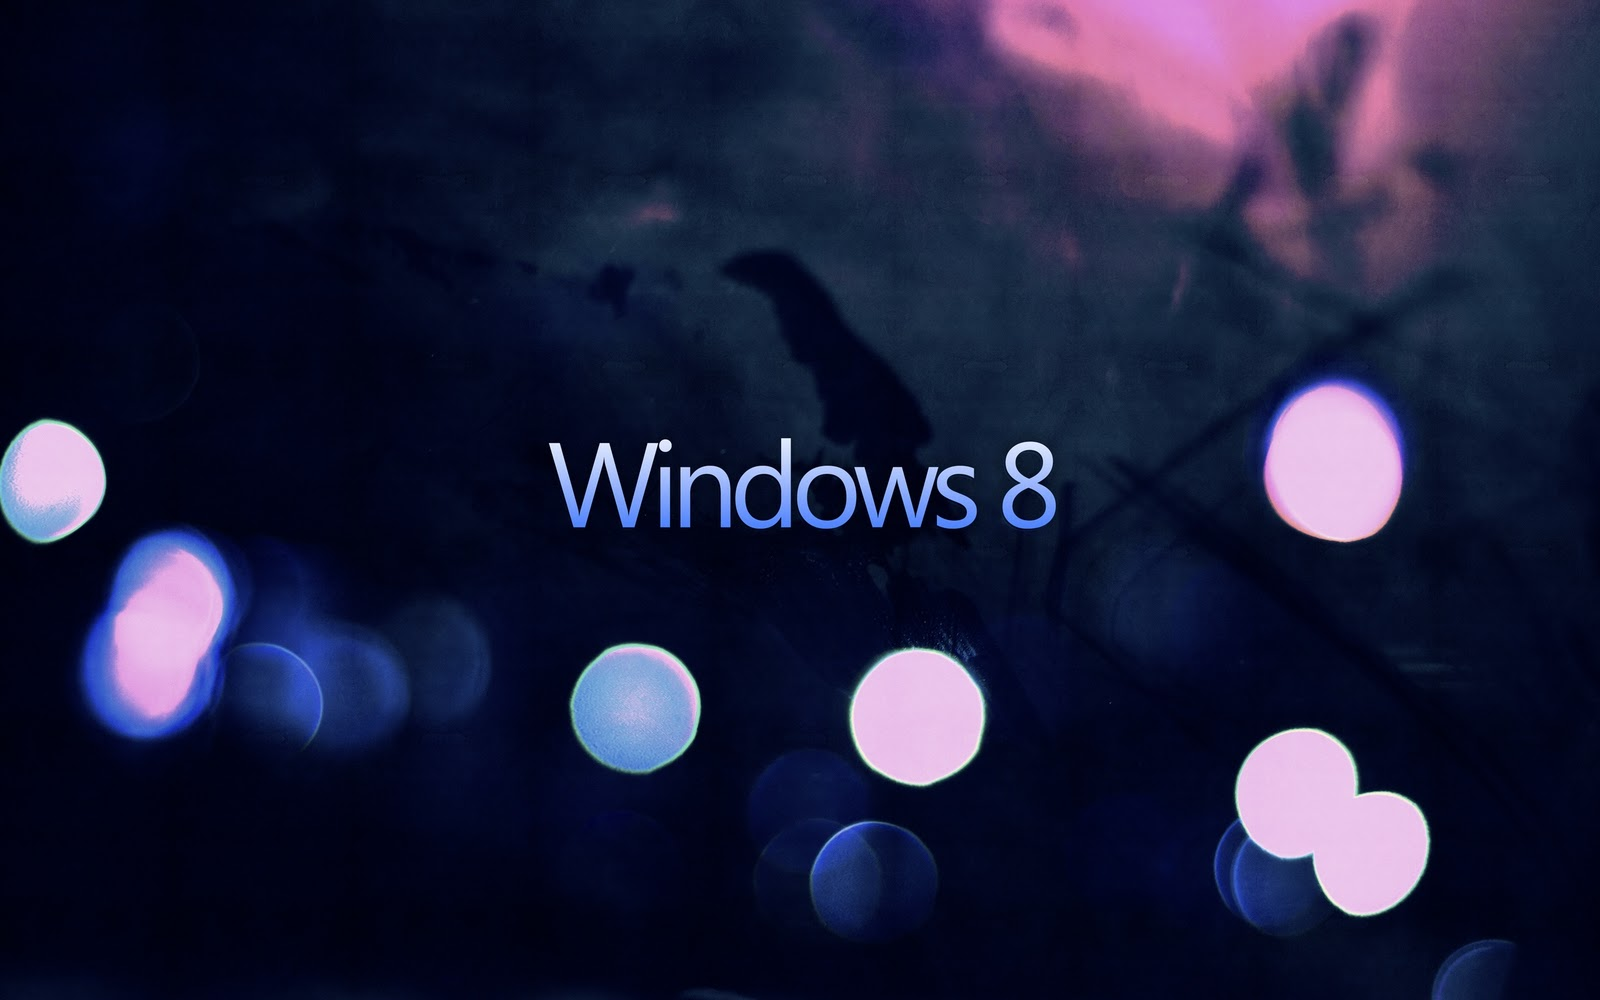 100 Pure High Definition HD Quality Desktop Wallpapers For Your Normal Dell Brand Widescreen